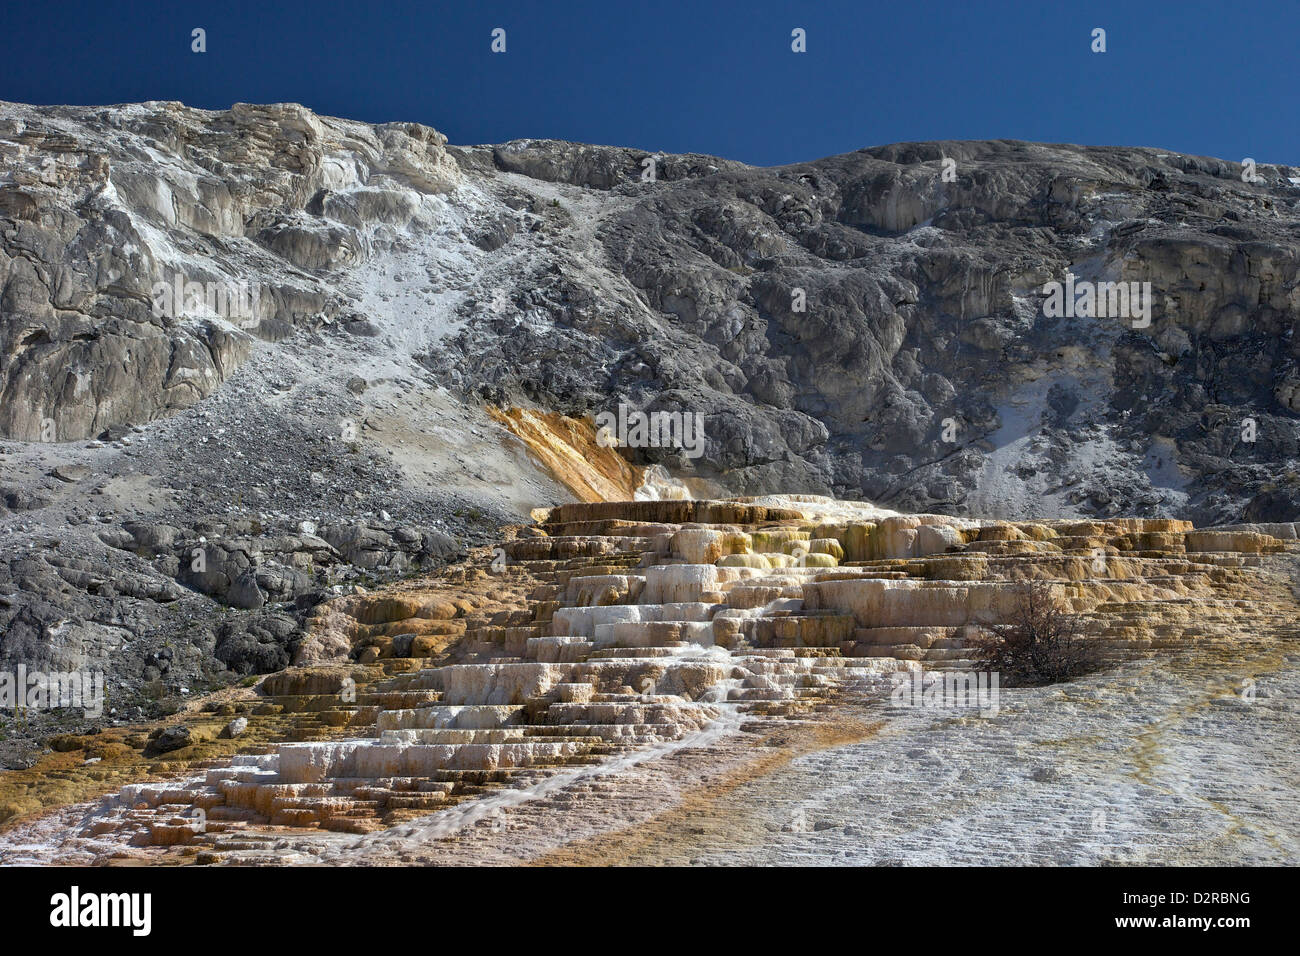 Mound Terrace, Mammoth Hot Springs, Yellowstone National Park, Wyoming, USA - Stock Image